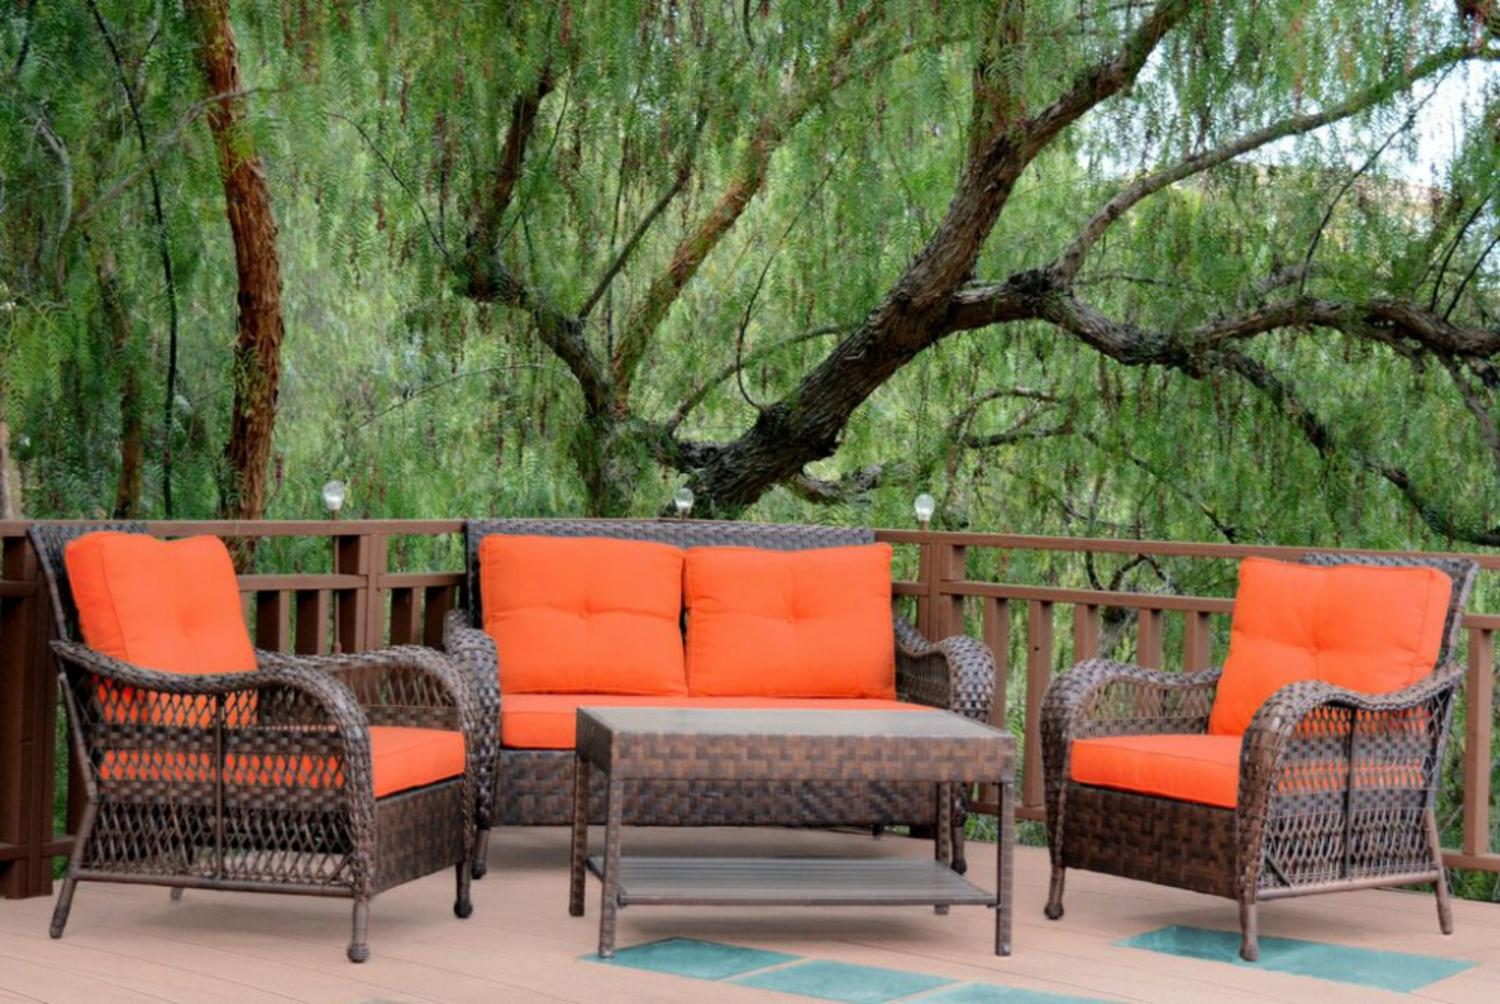 4-Piece Espresso Resin Wicker Outdoor Patio Conversation Furniture Set Orange Cushions by Resin Furniture